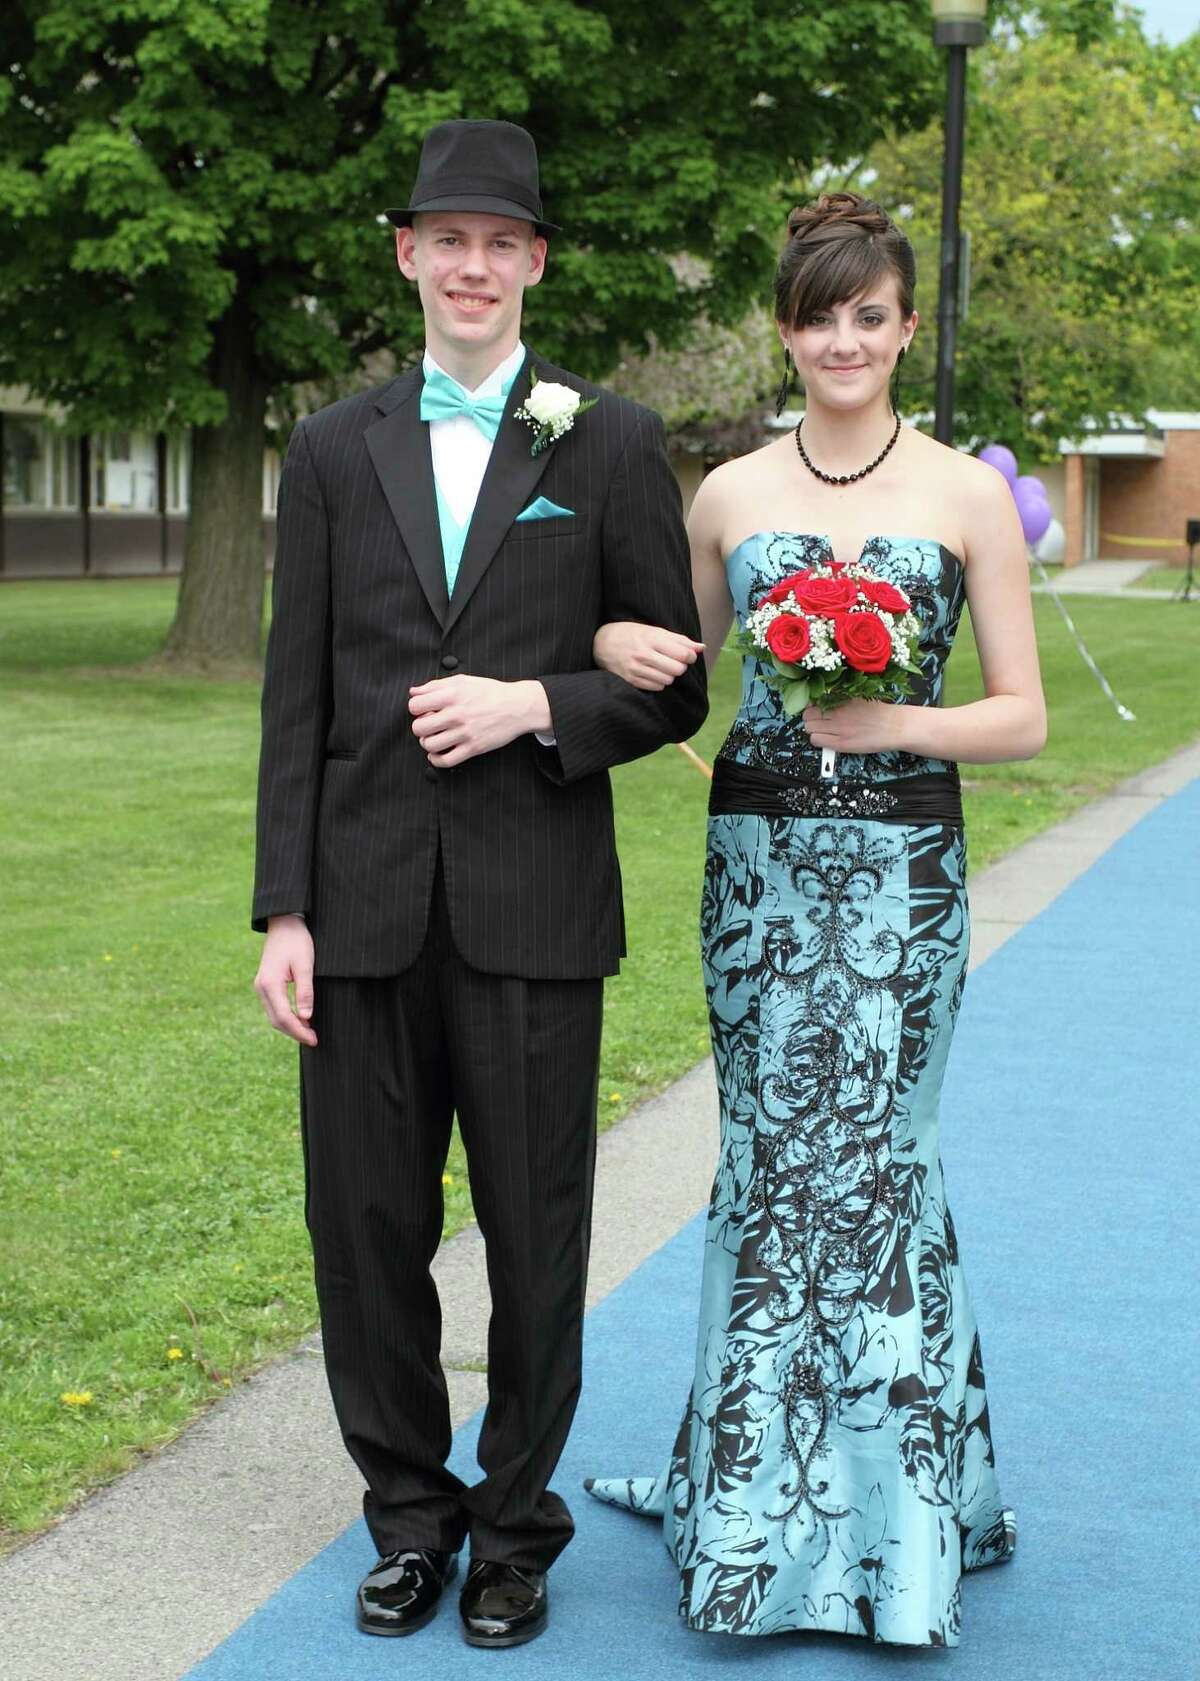 Were you Seen at the Schenectady prom on Friday, May 10, 2013?